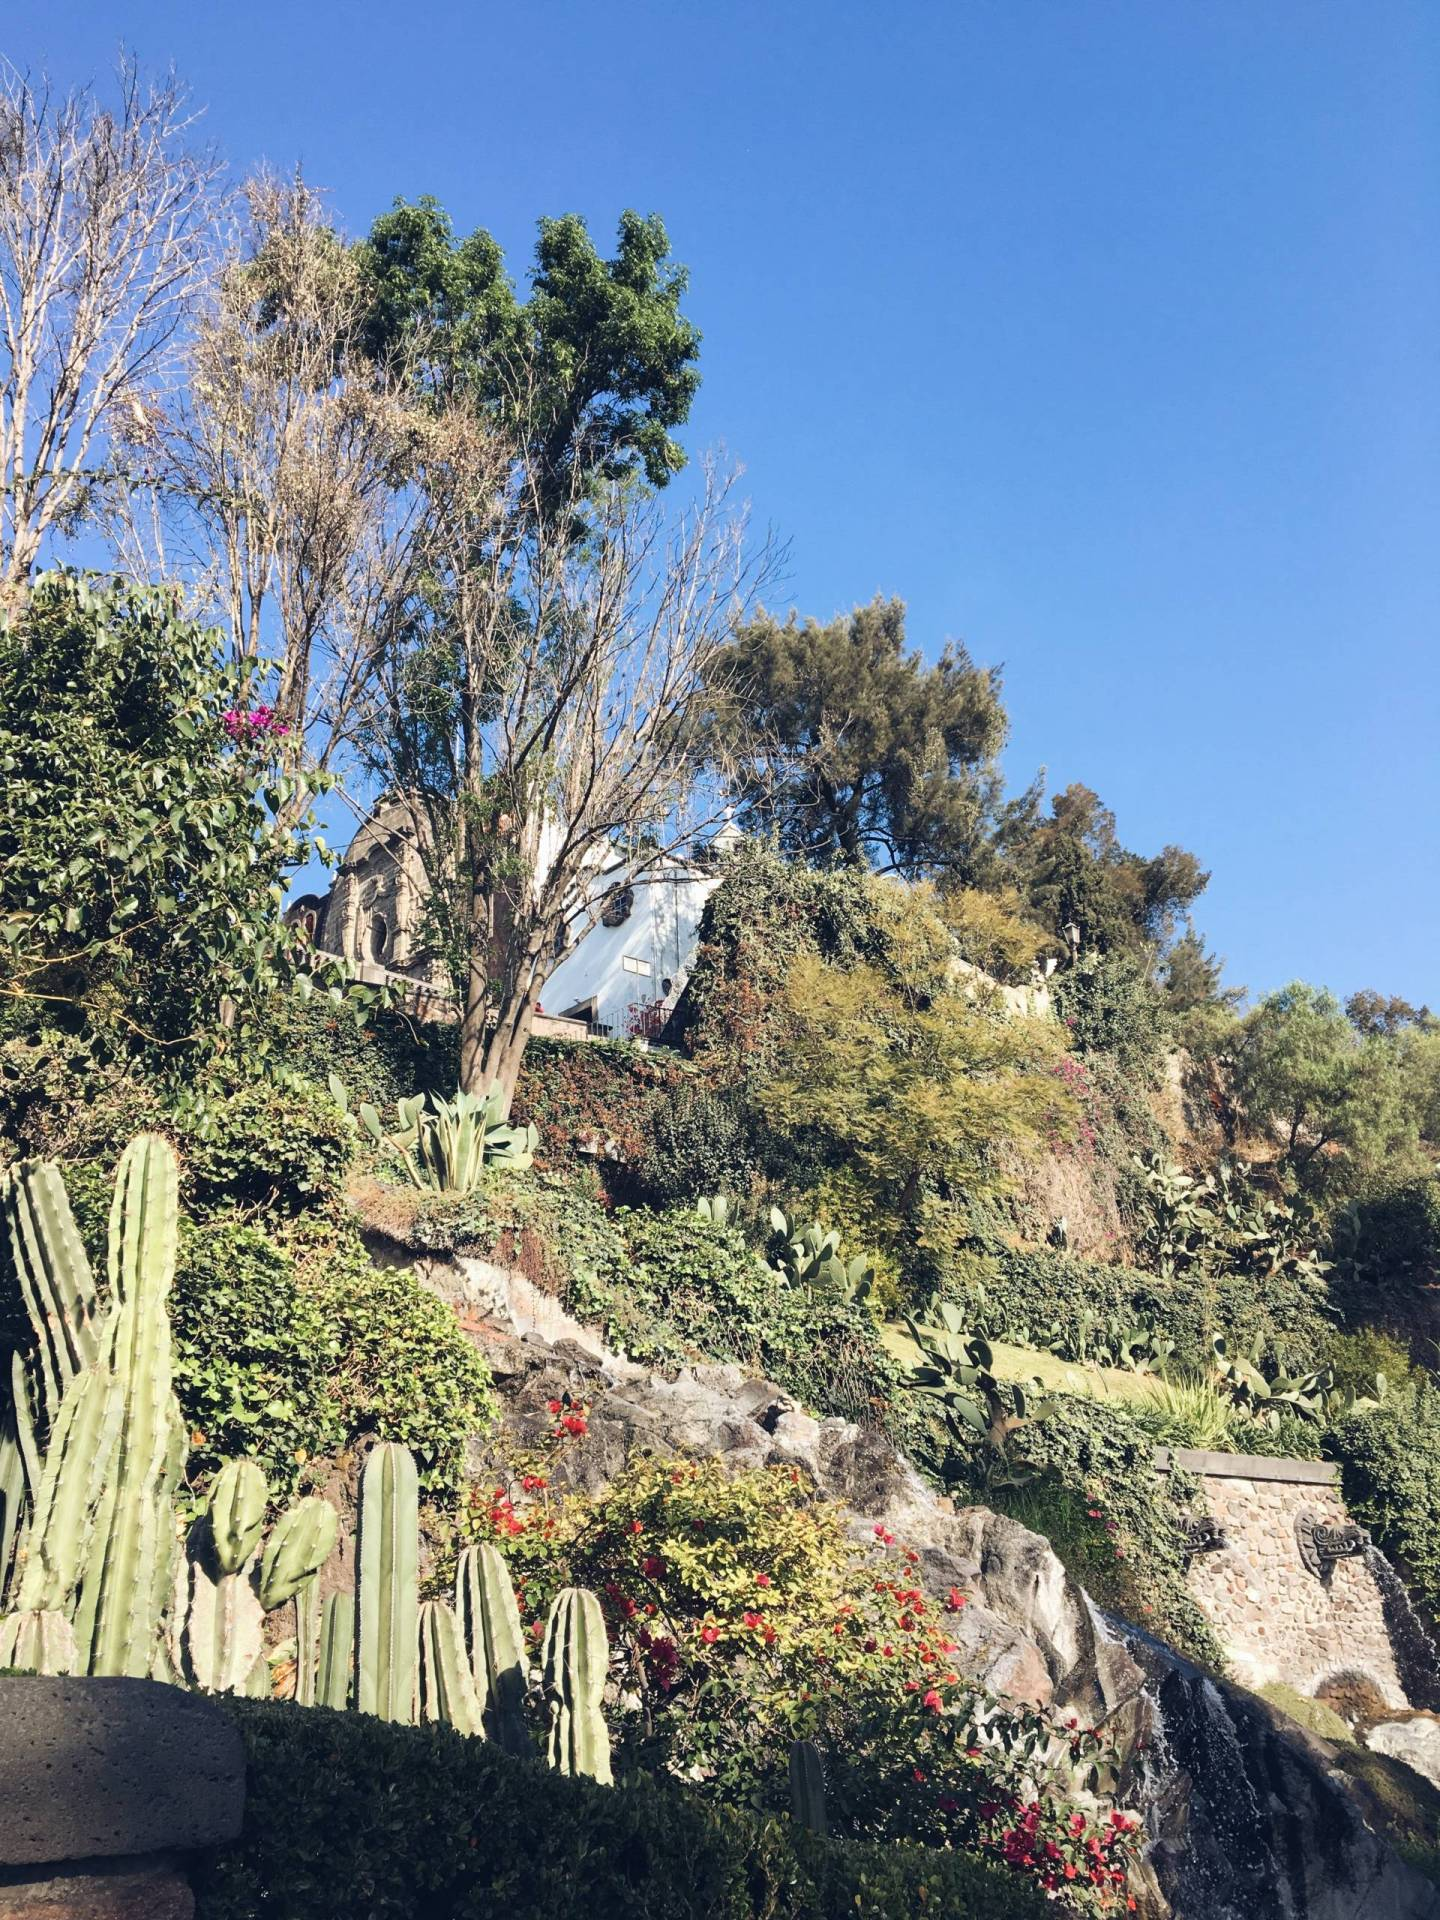 Garden at Our Lady of Guadalupe in Mexico City